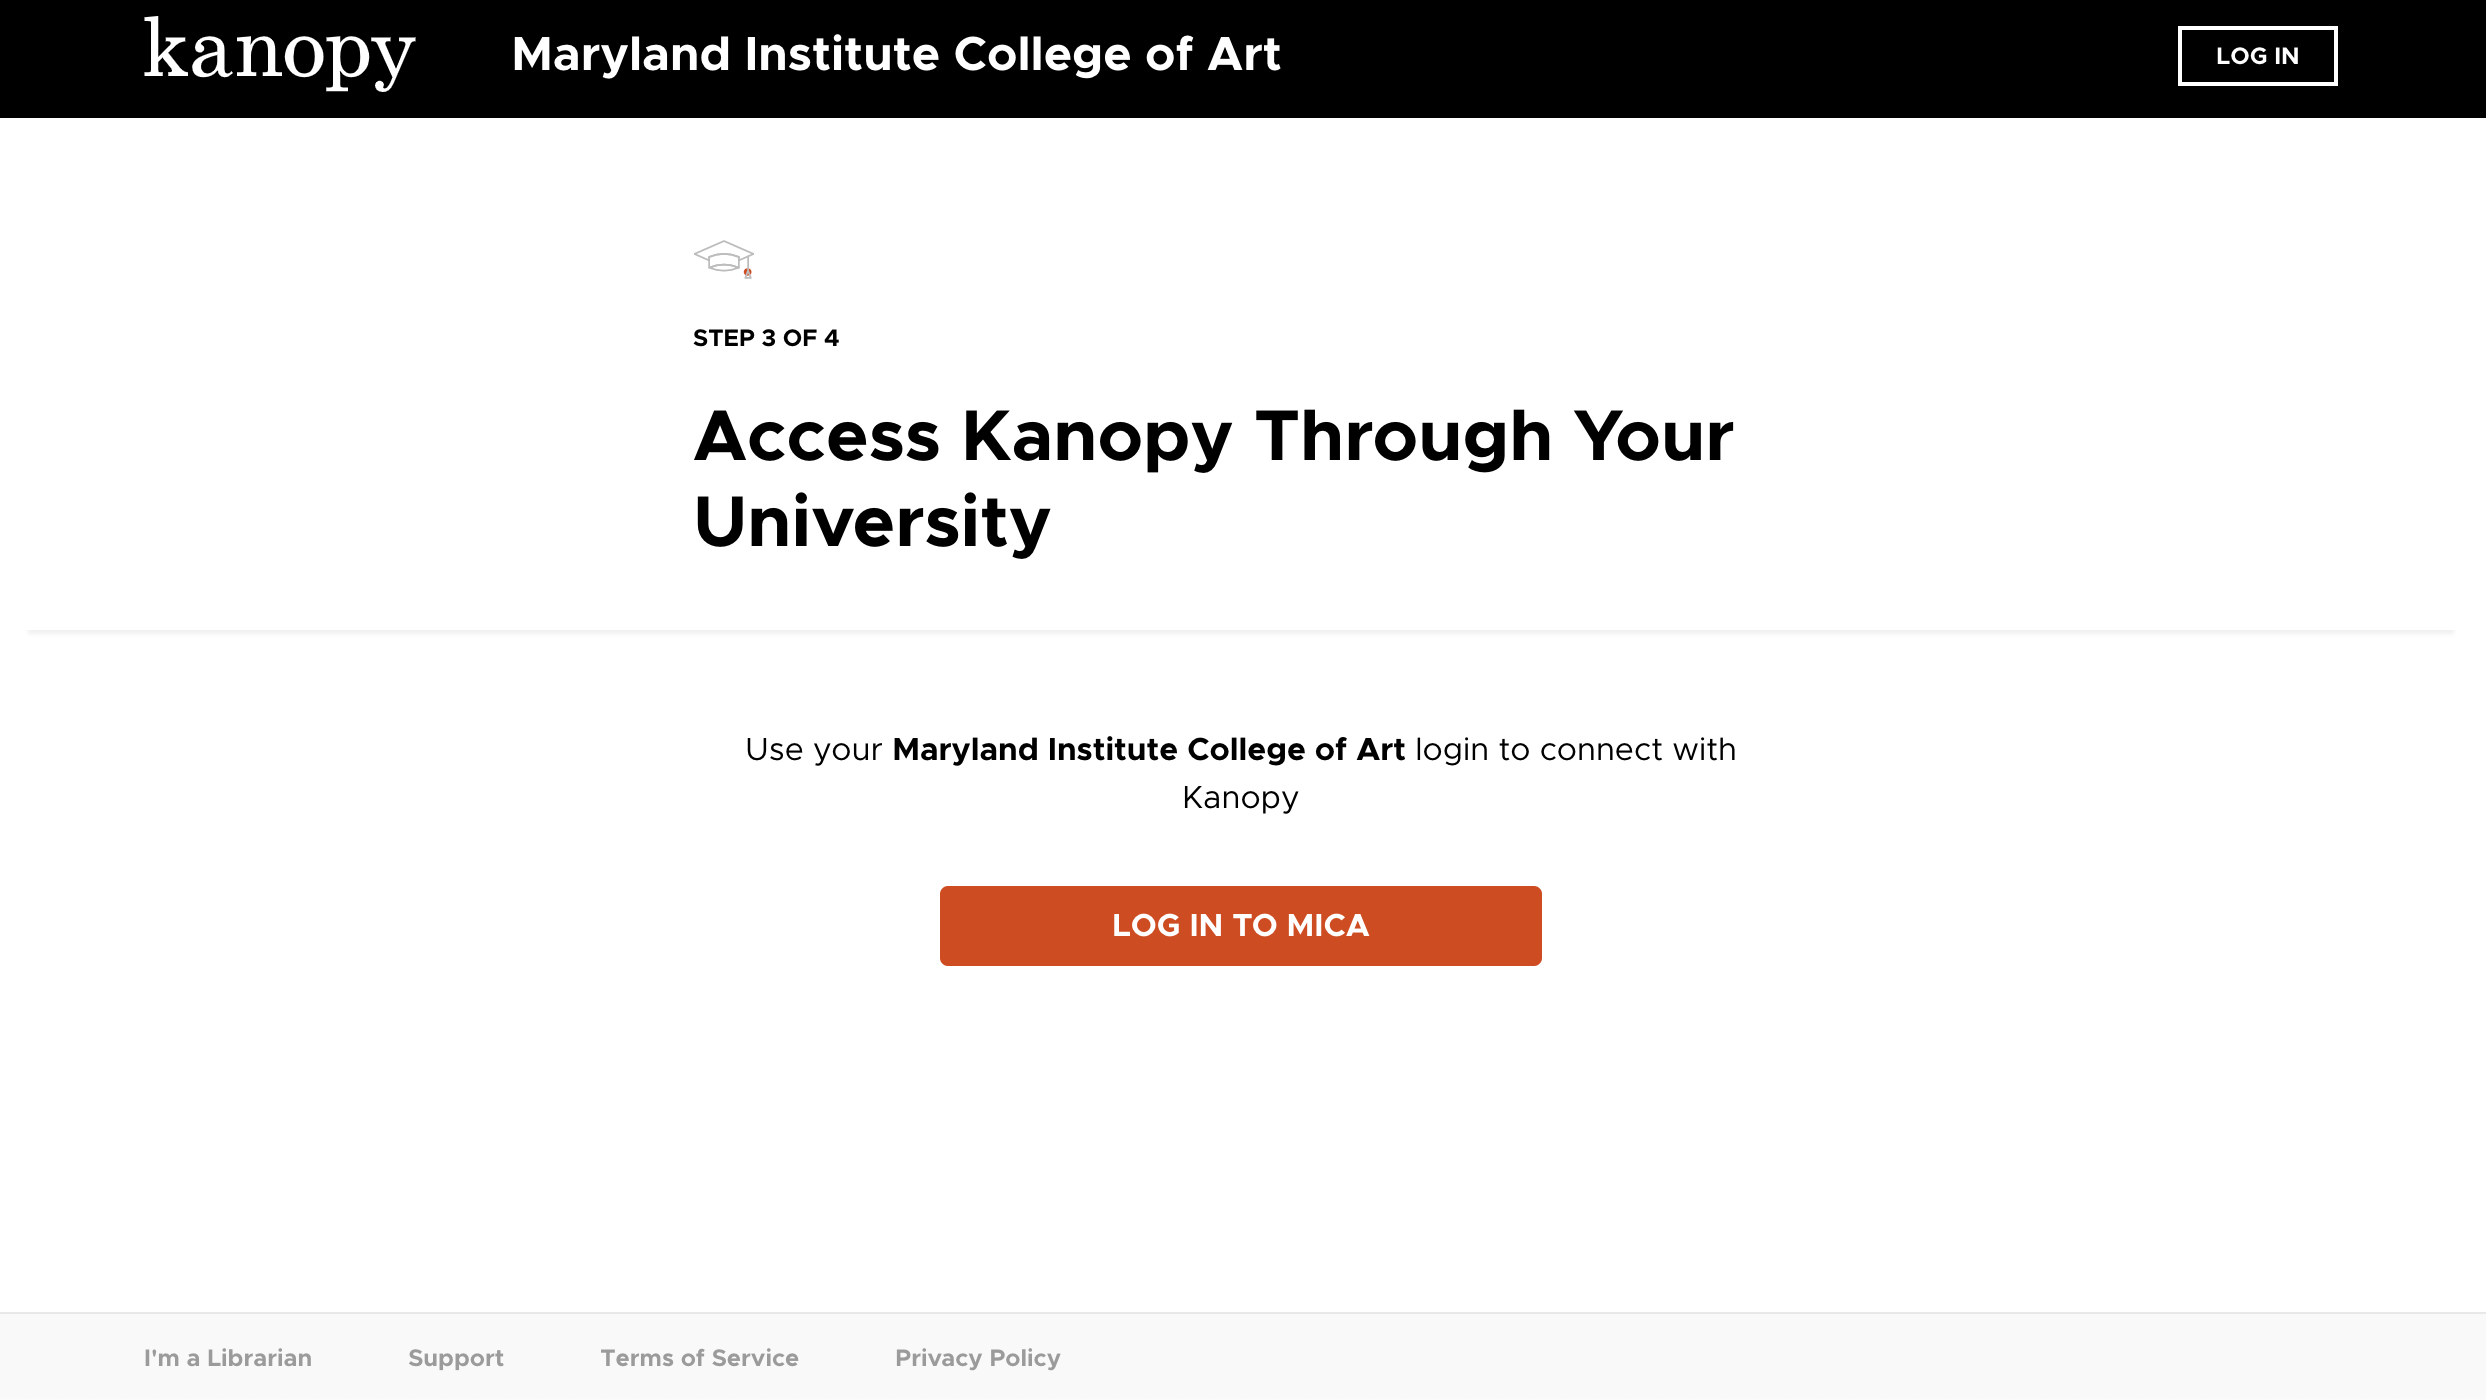 Screenshot of Kanopy asking you to login to your MICA account